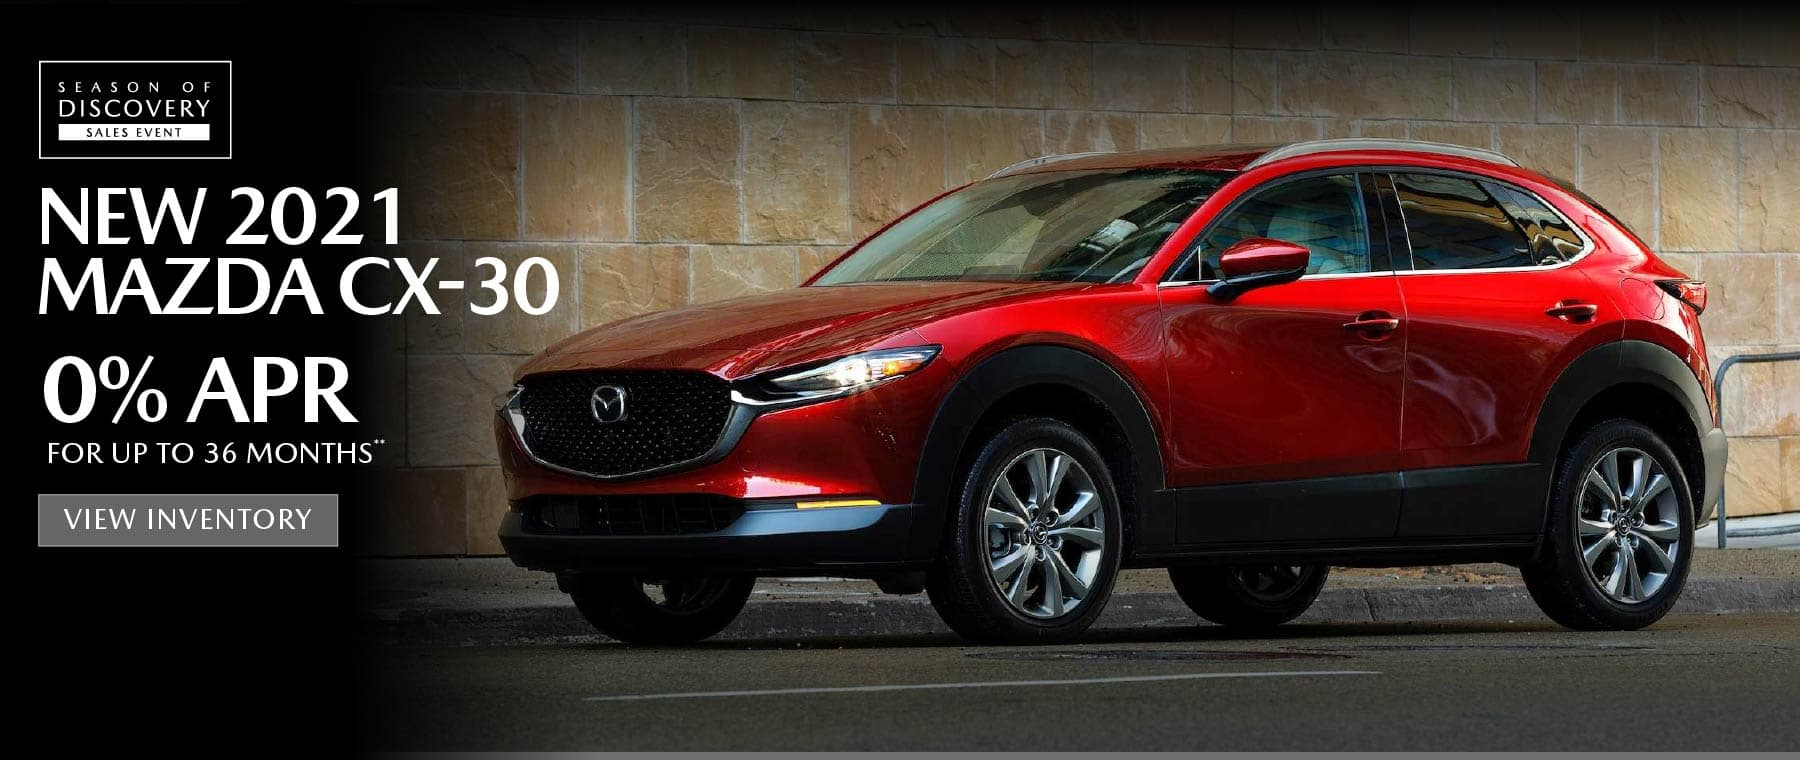 New 2021 Mazda CX-30 - 0%APR for up to 36 months*